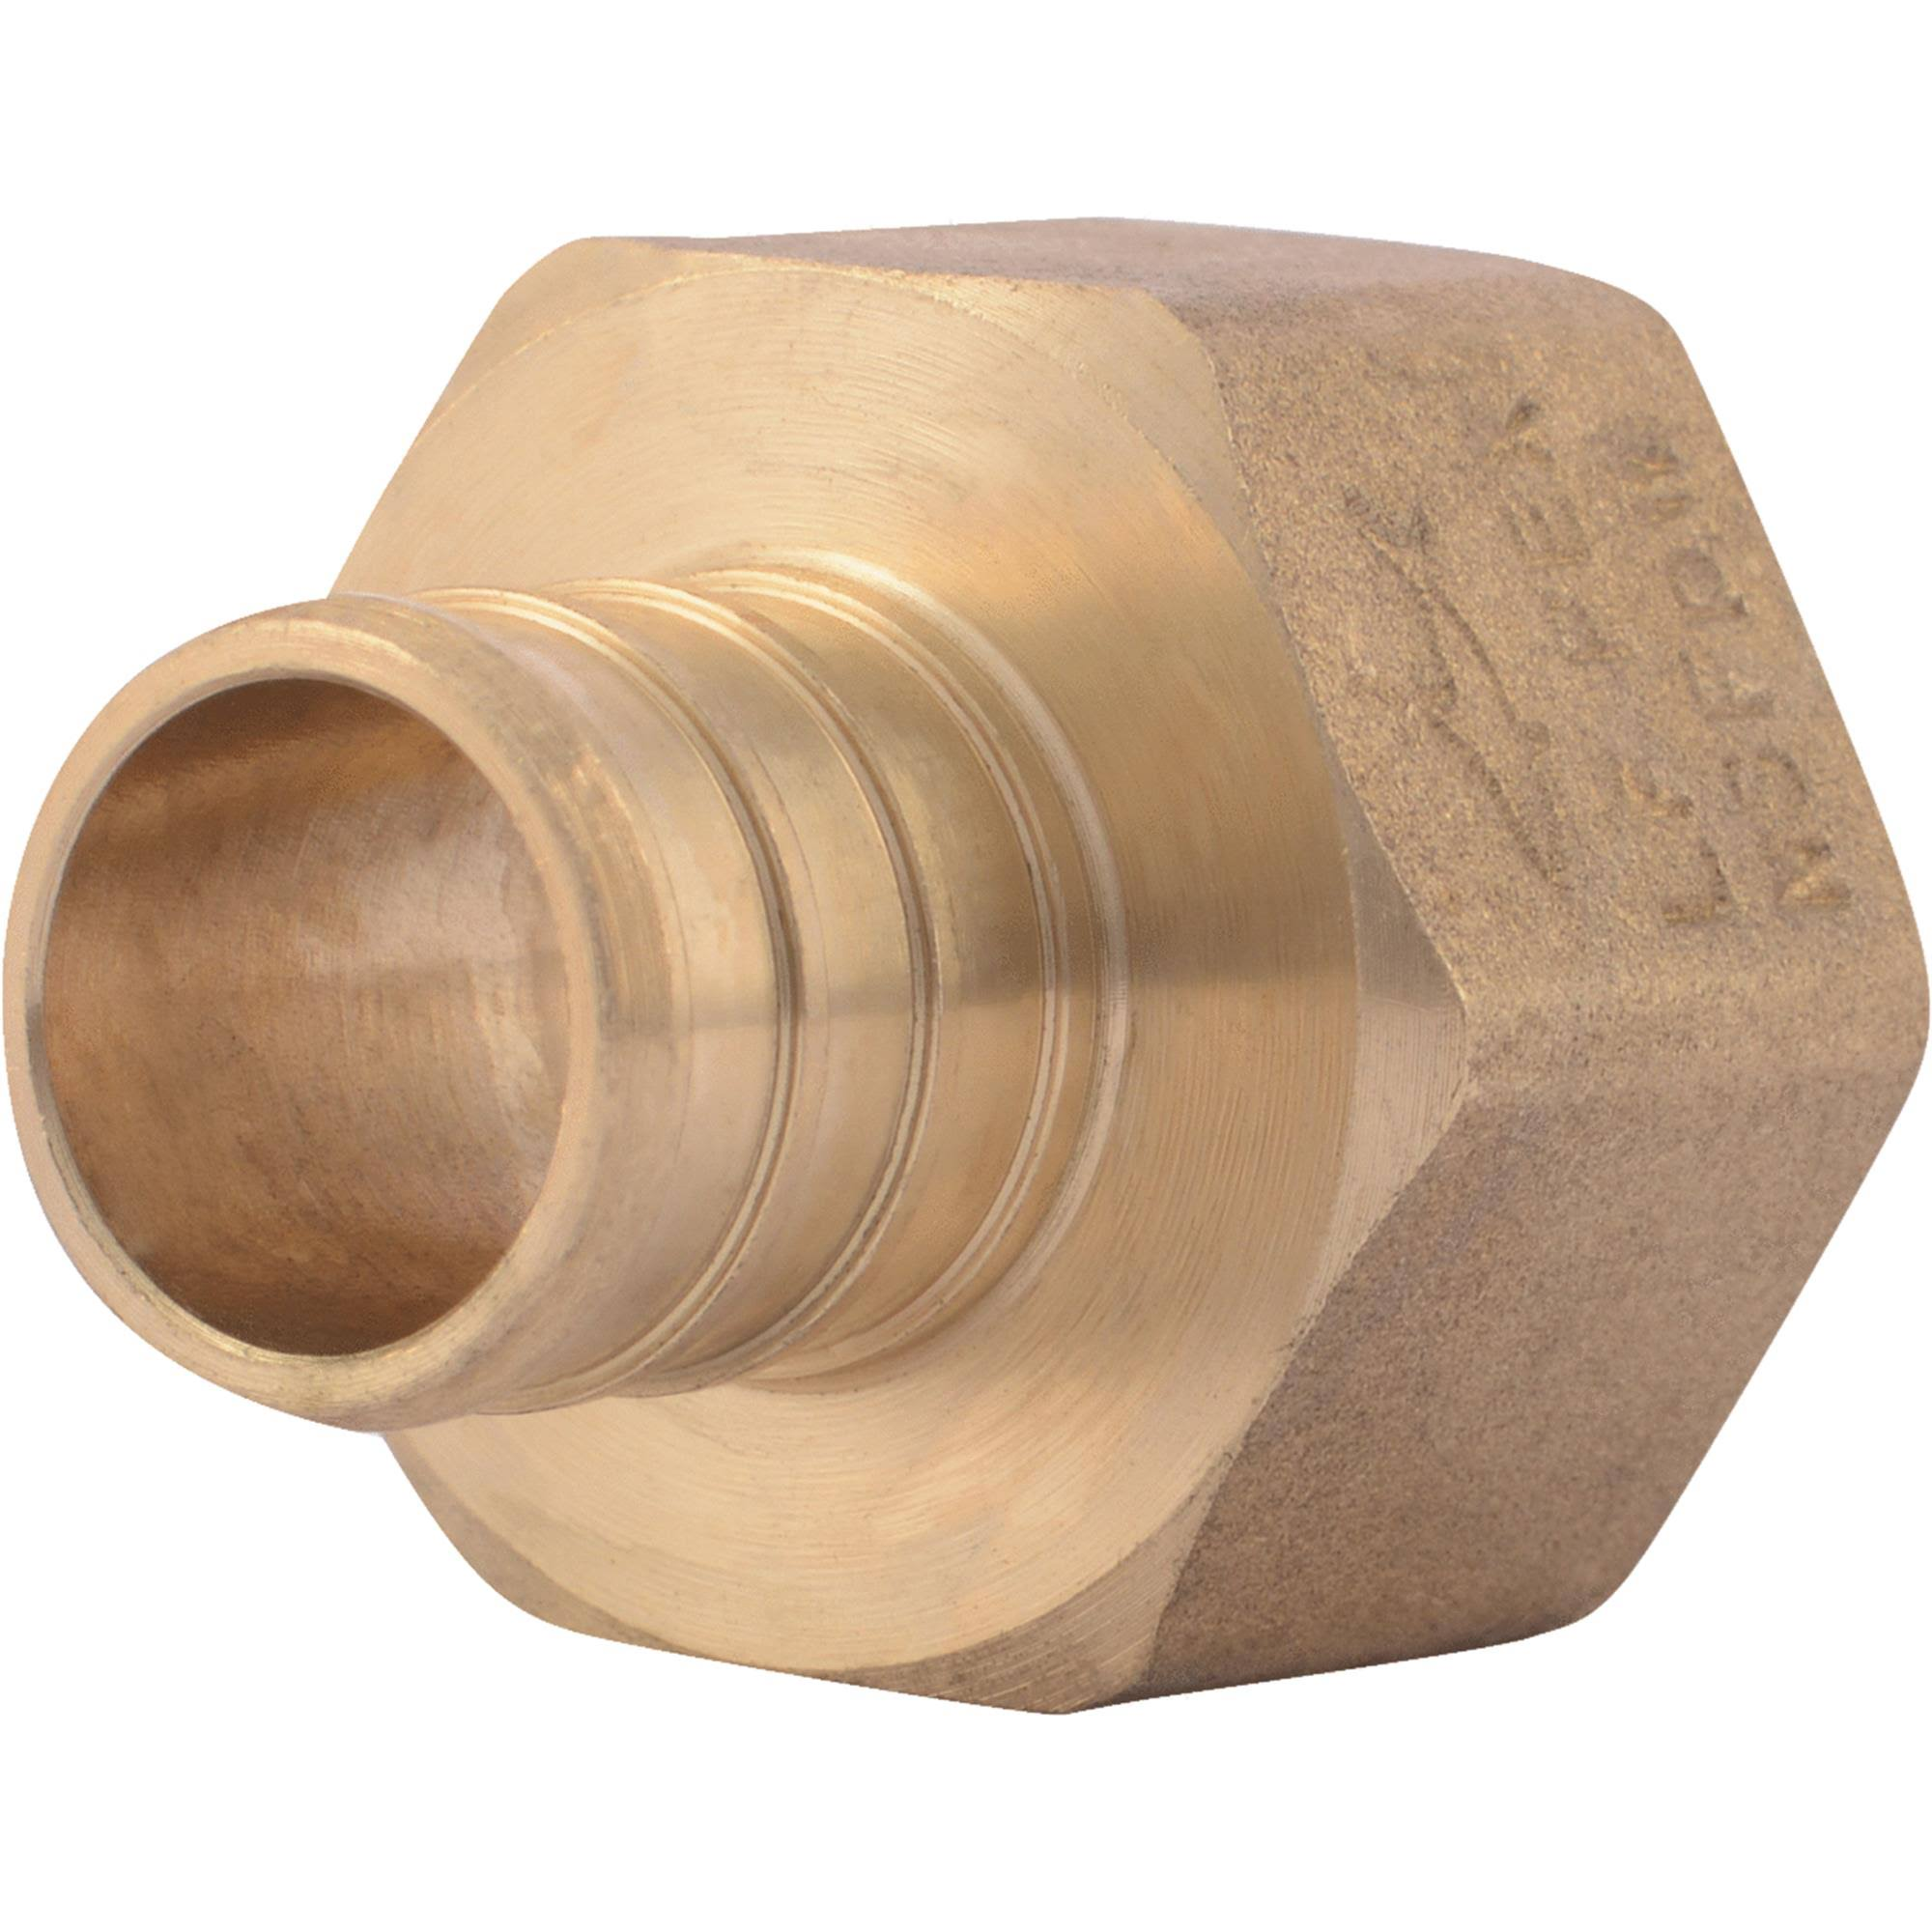 Sharkbite Brass Female Adapter, Uc088lfa5